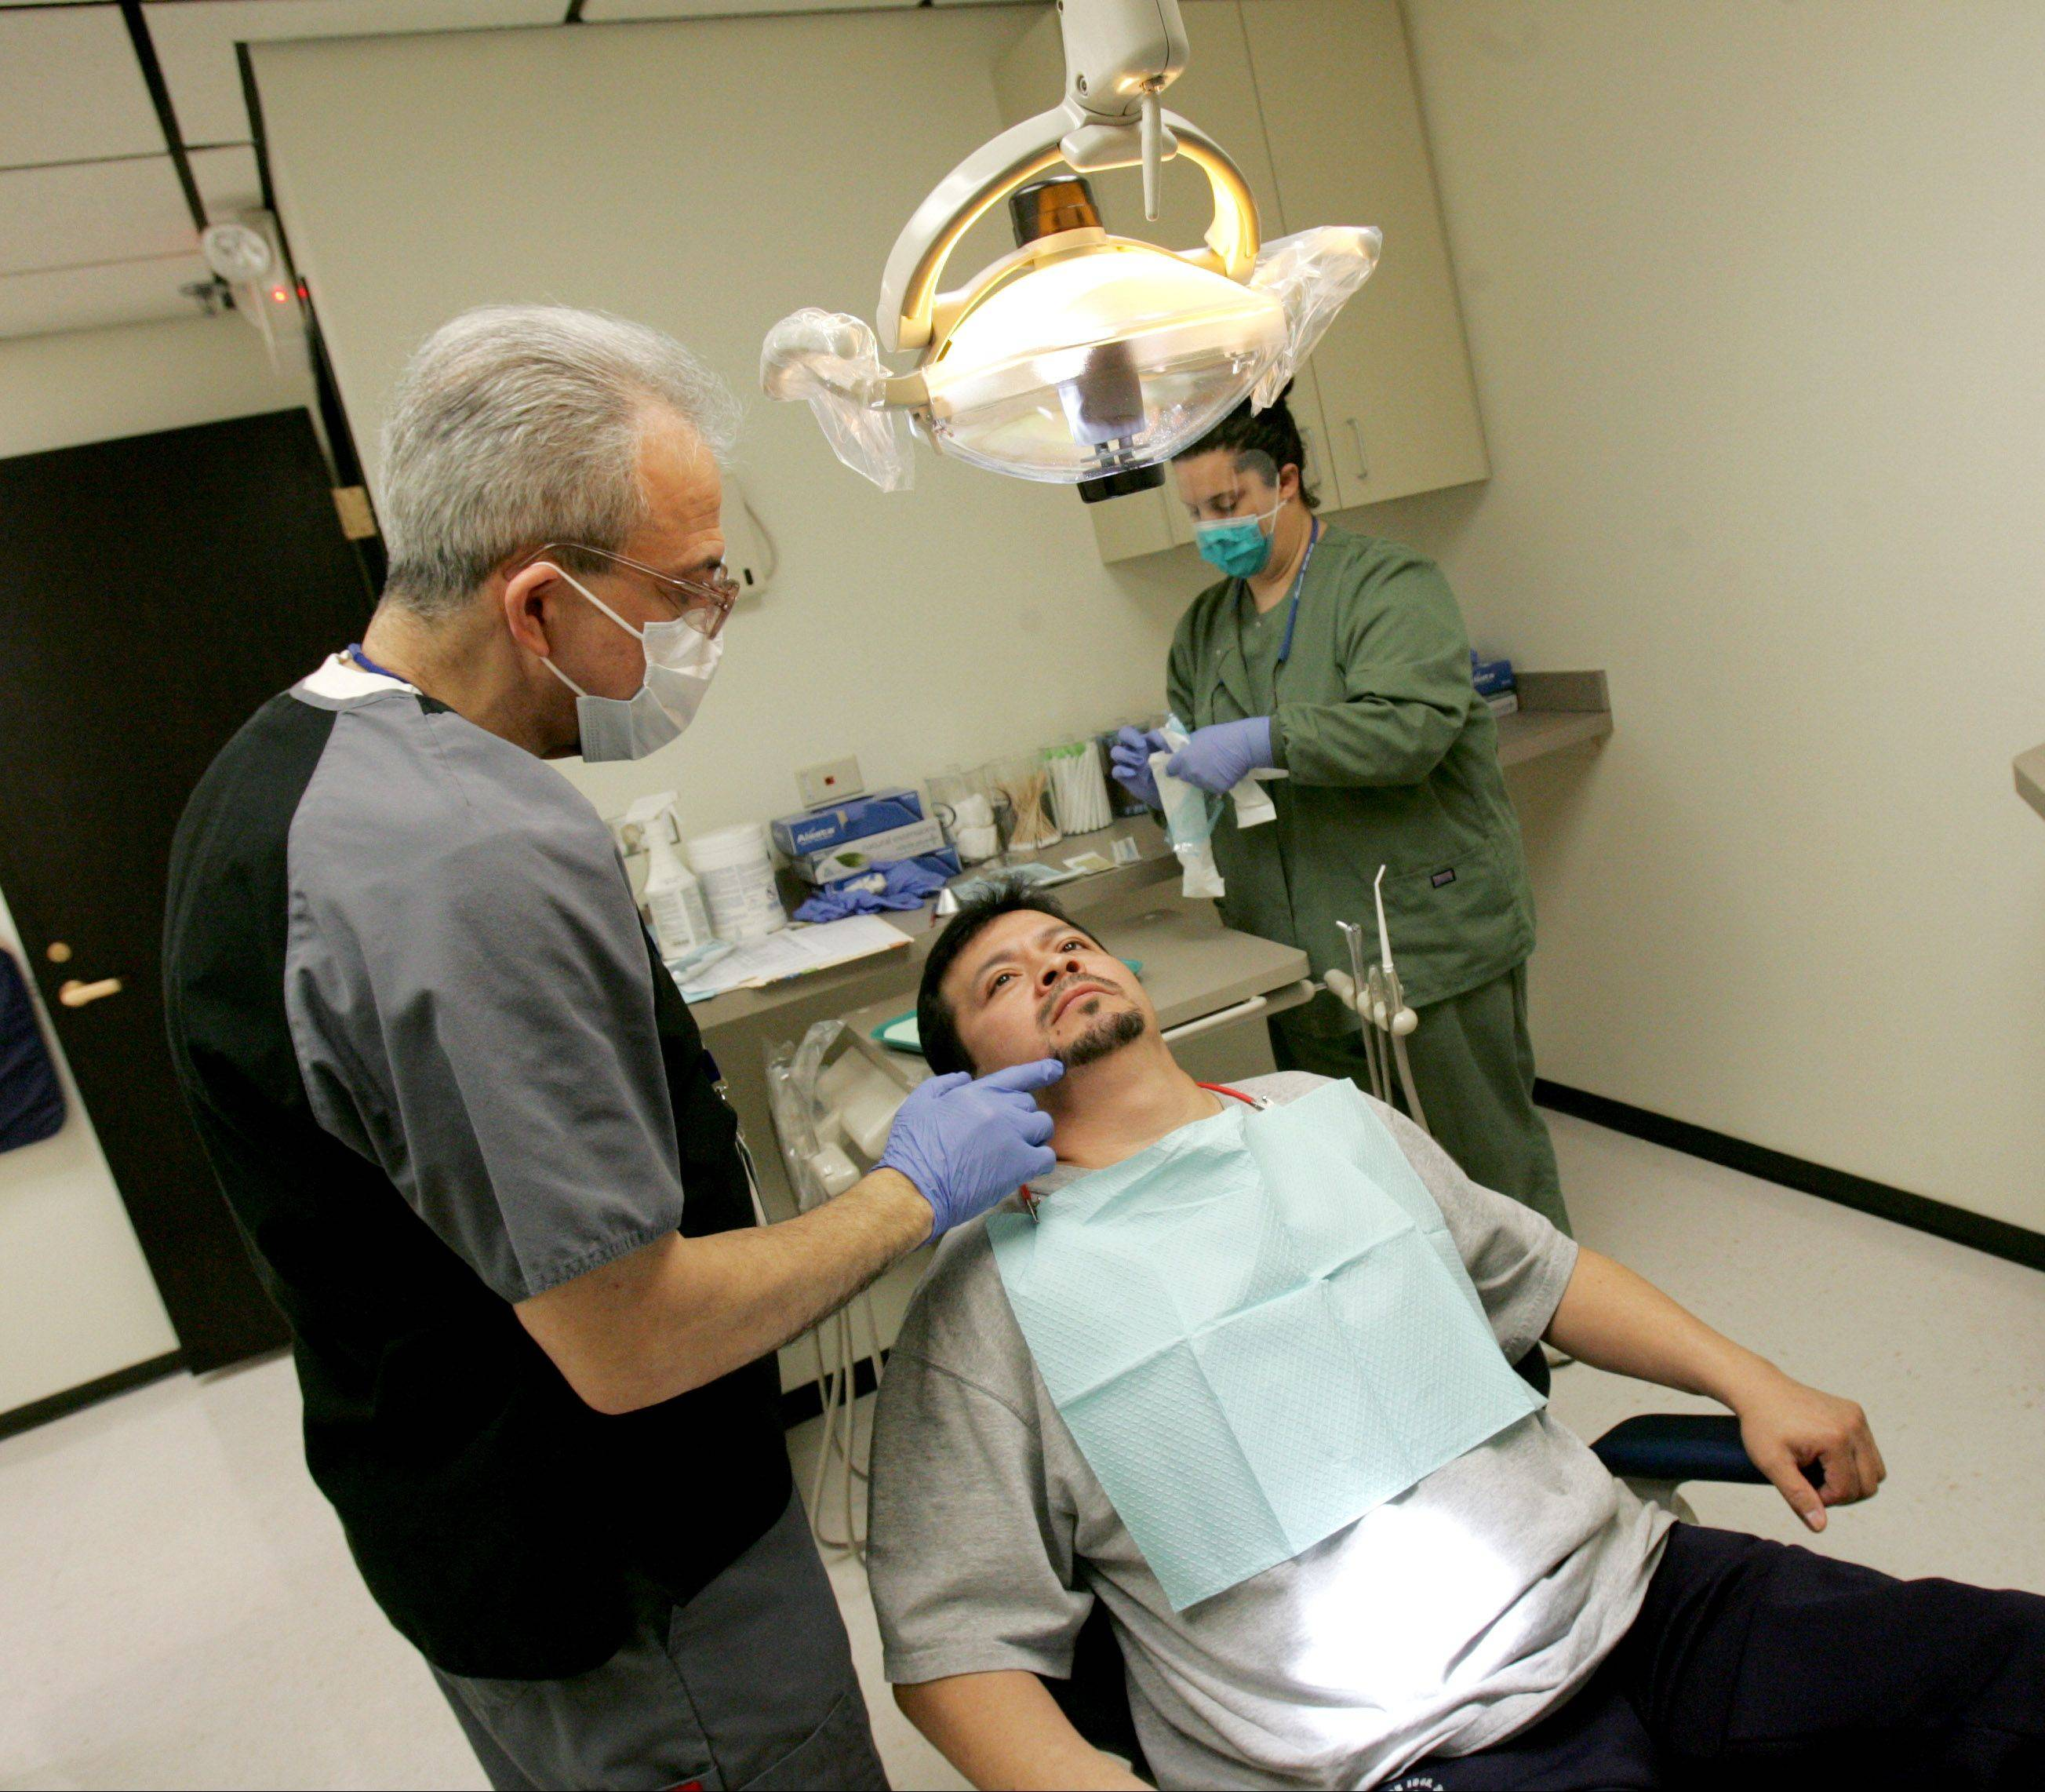 Leobardo Moralez of Bensenville is seen by Dr. John Ranieri, left, at the revamped urgent care dental clinic in the DuPage County Health Department building in Wheaton.